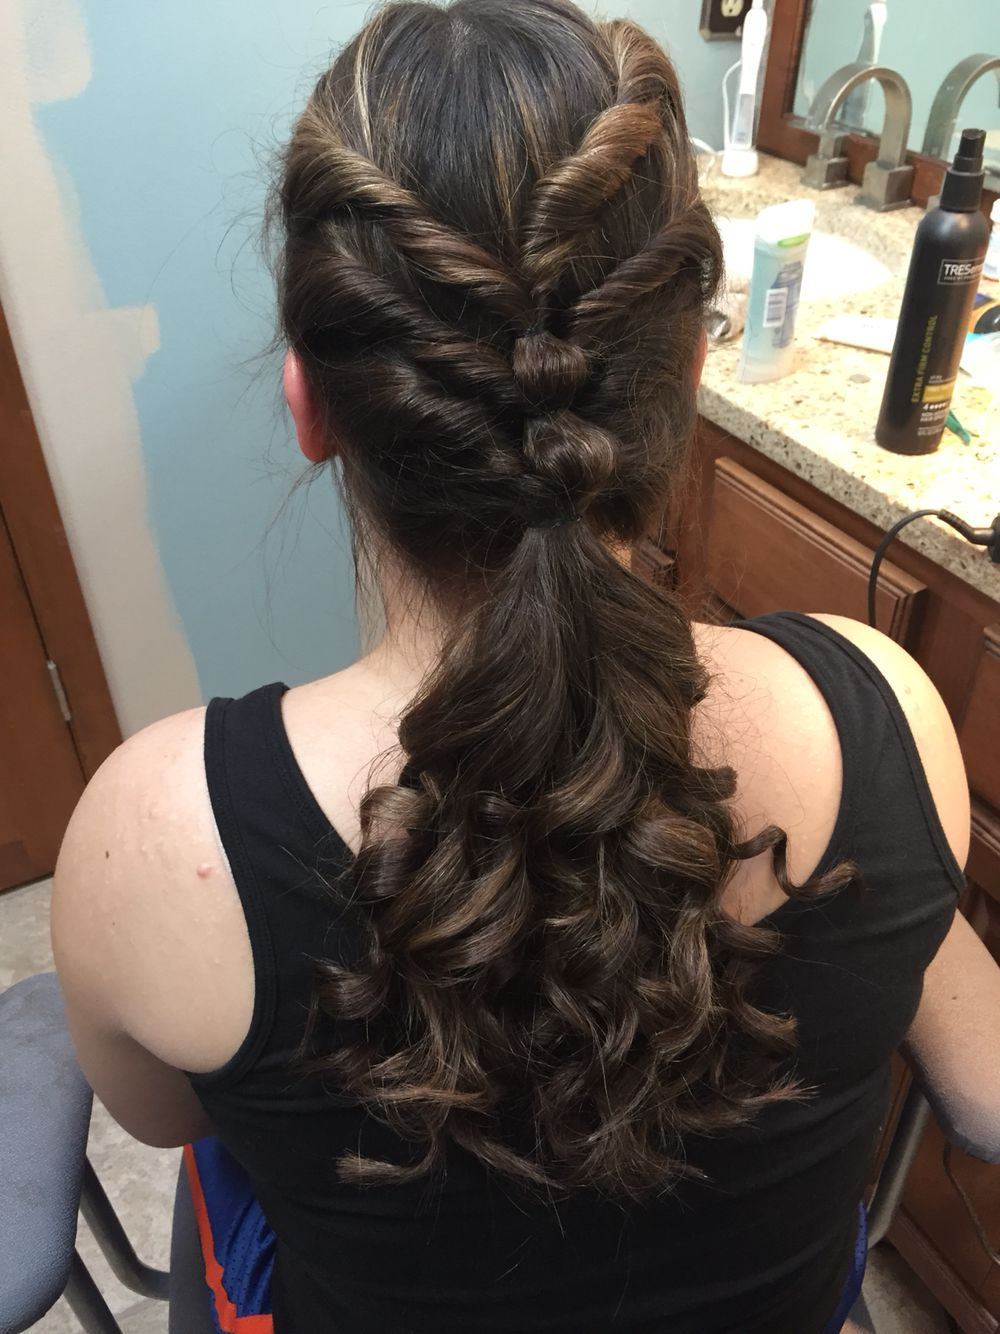 cute hairstyle for middle school dances! | hair in 2019